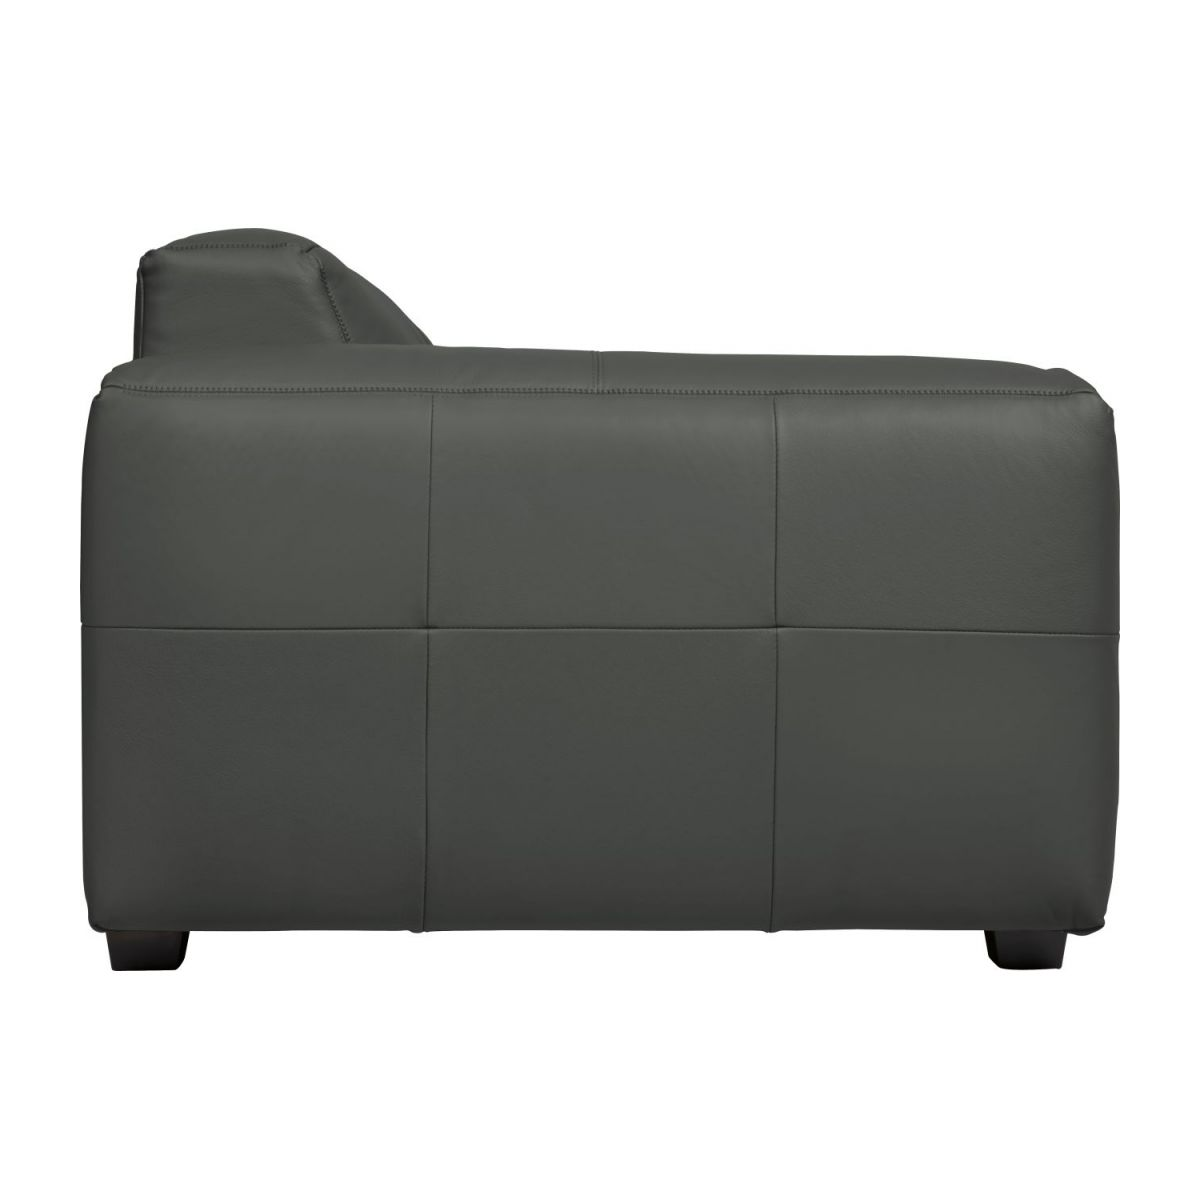 4 seater sofa in Savoy semi-aniline leather, grey n°5